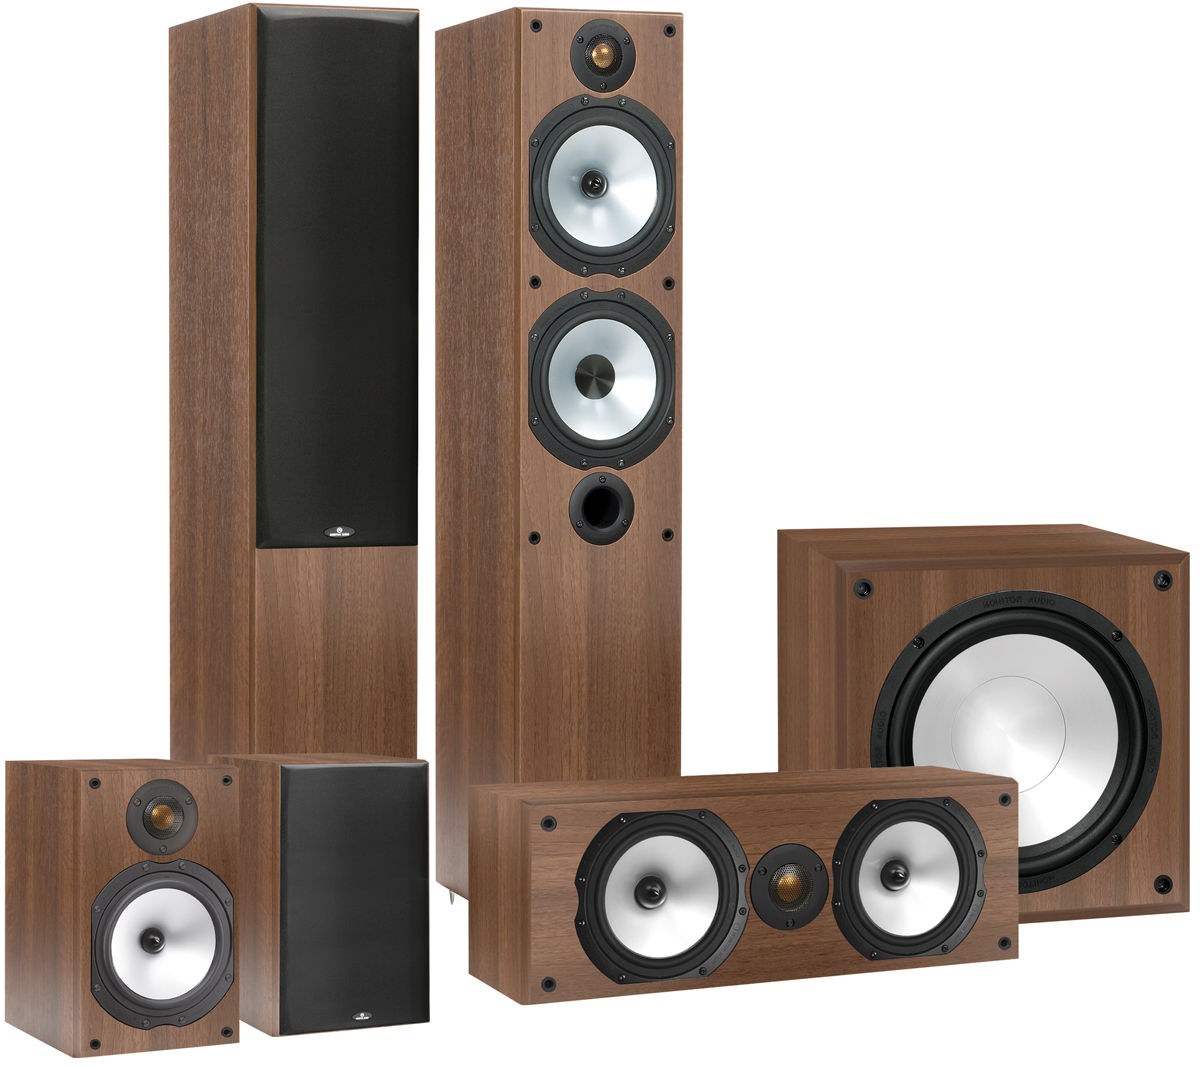 monitor audio mr4 hc 5 1 packs d 39 enceintes son vid. Black Bedroom Furniture Sets. Home Design Ideas